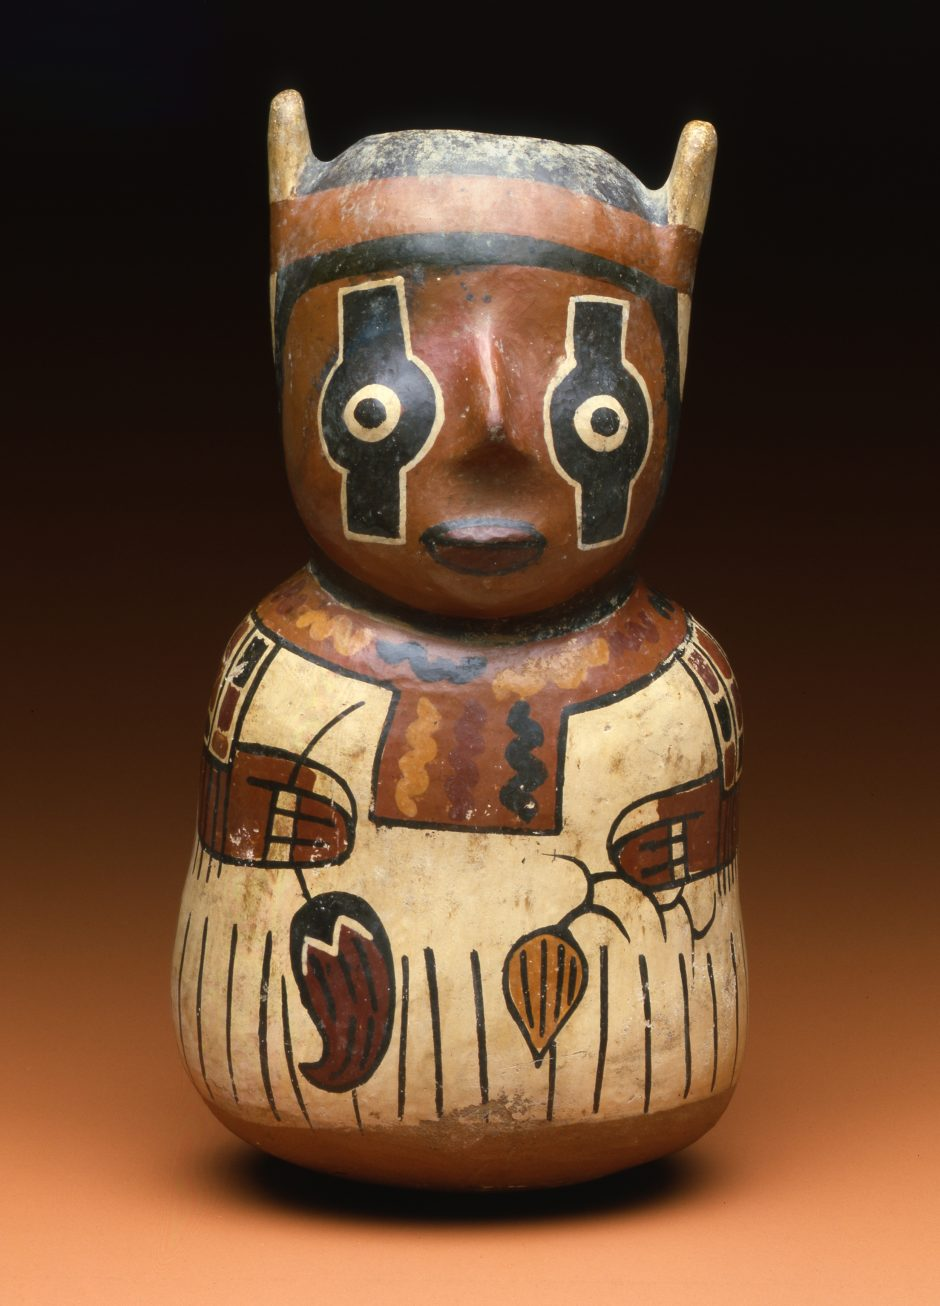 Vessel made of painted and fired clay, depicting a human figure with painted eyes and holding field crops